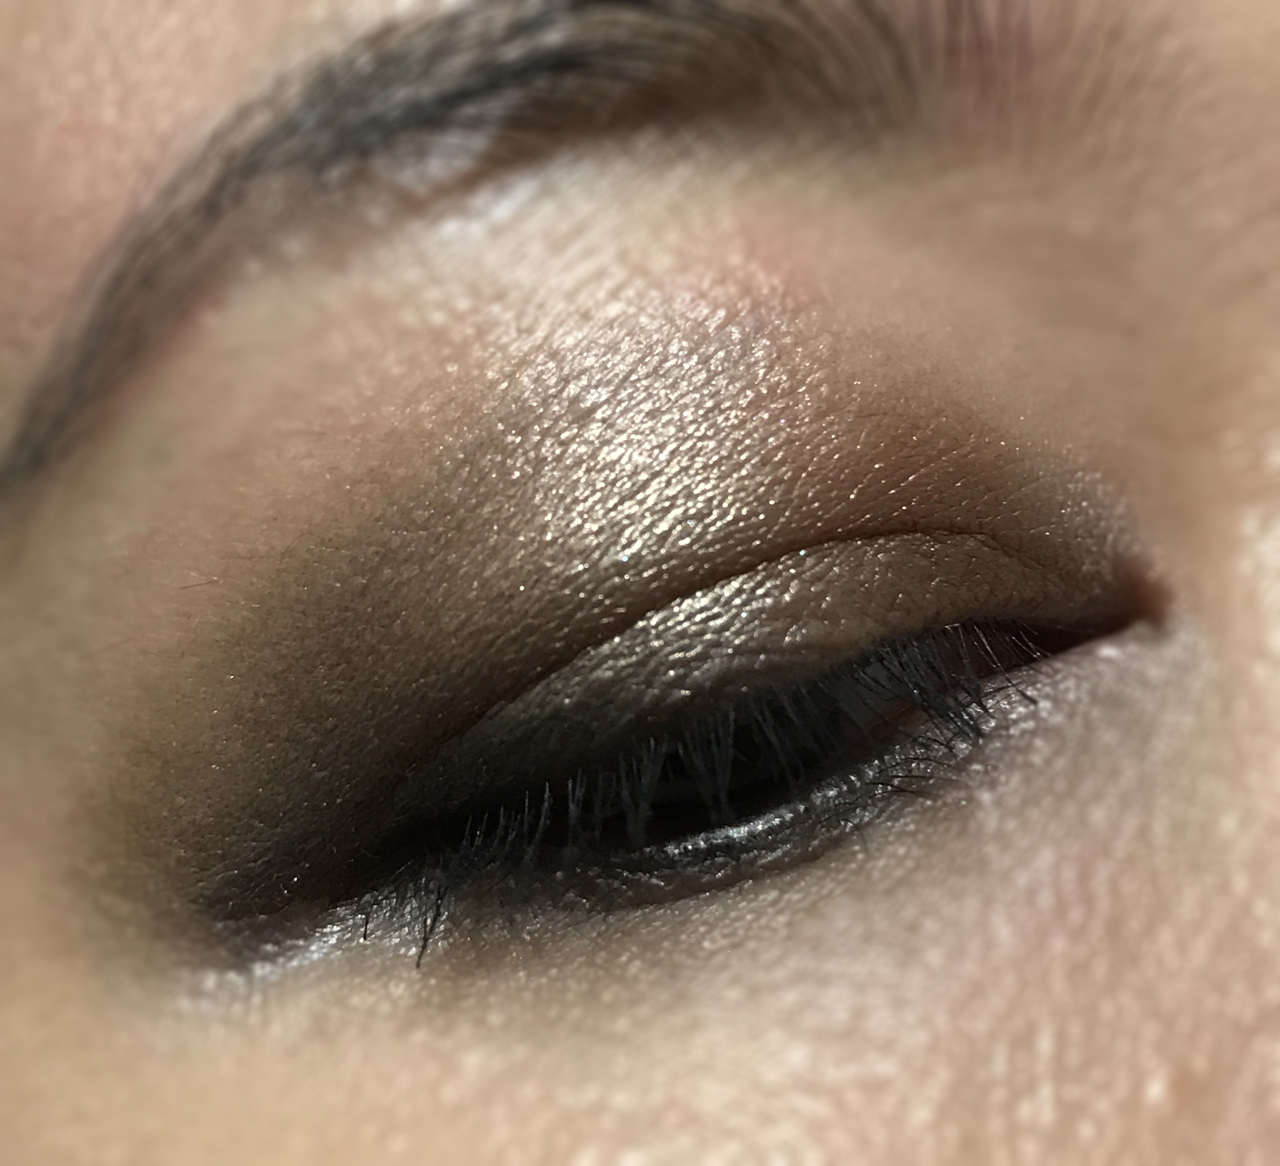 Chanel Les 4 Ombres Codes Subtil eye makeup look